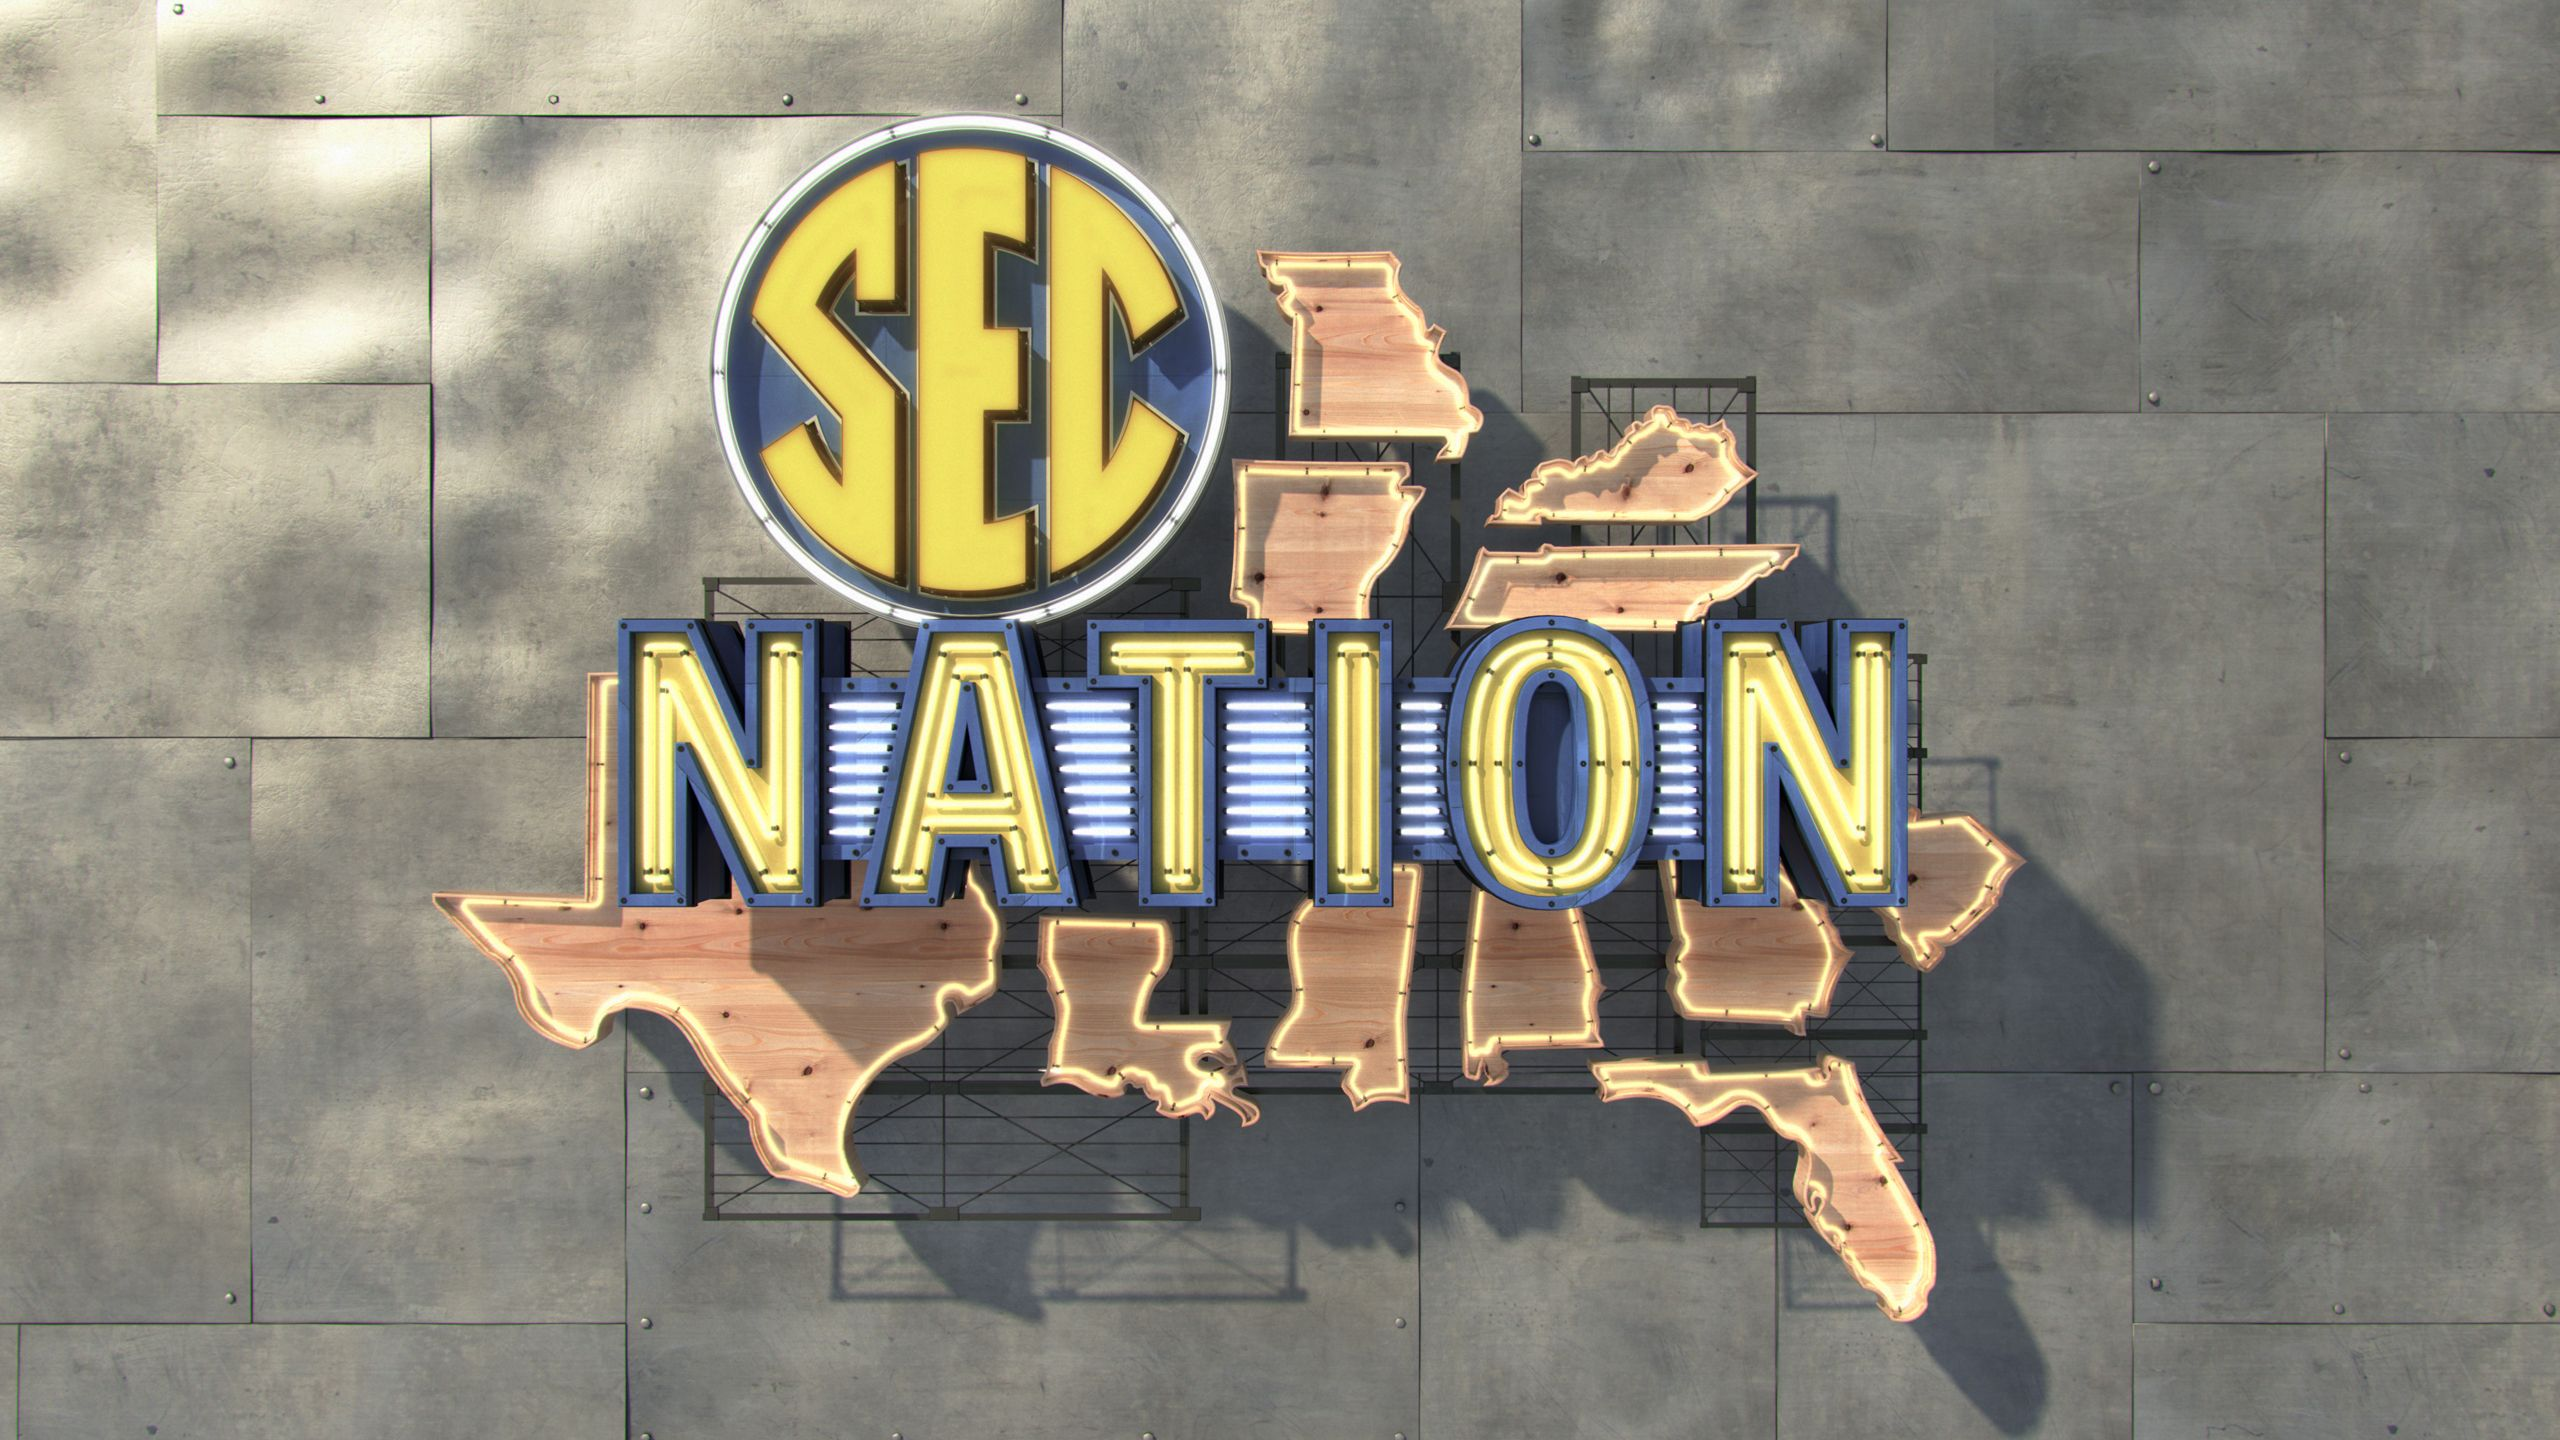 Mon, 12/11 - SEC Nation Bowl Preview